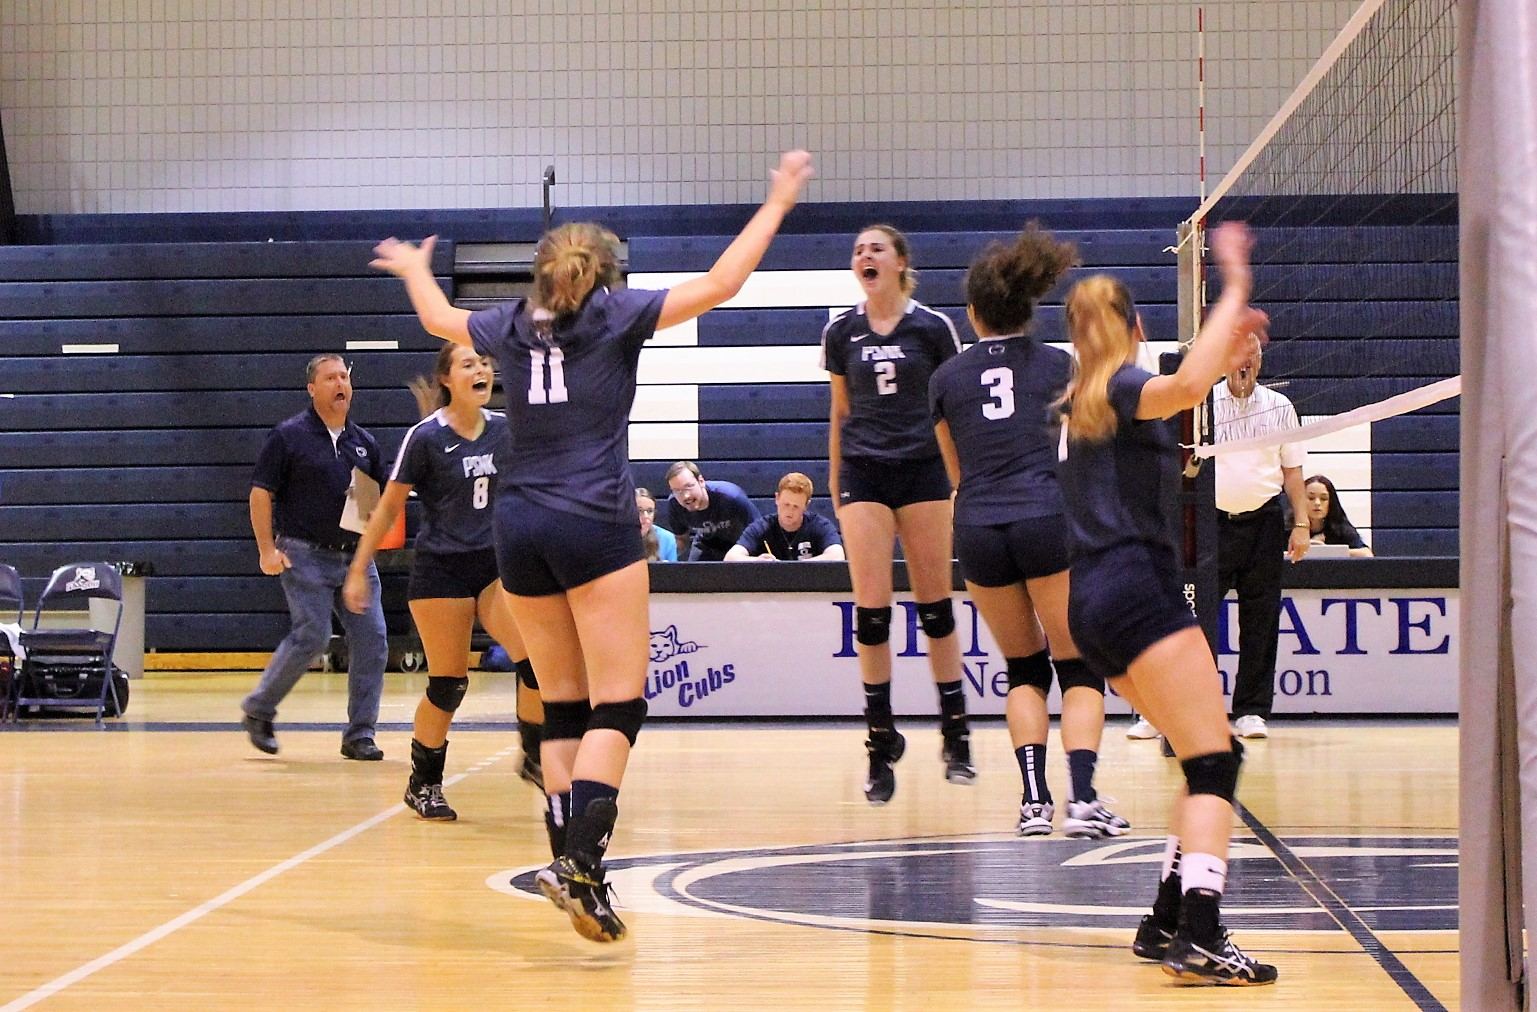 Shenango Volleyball Takes Win from New Kensington